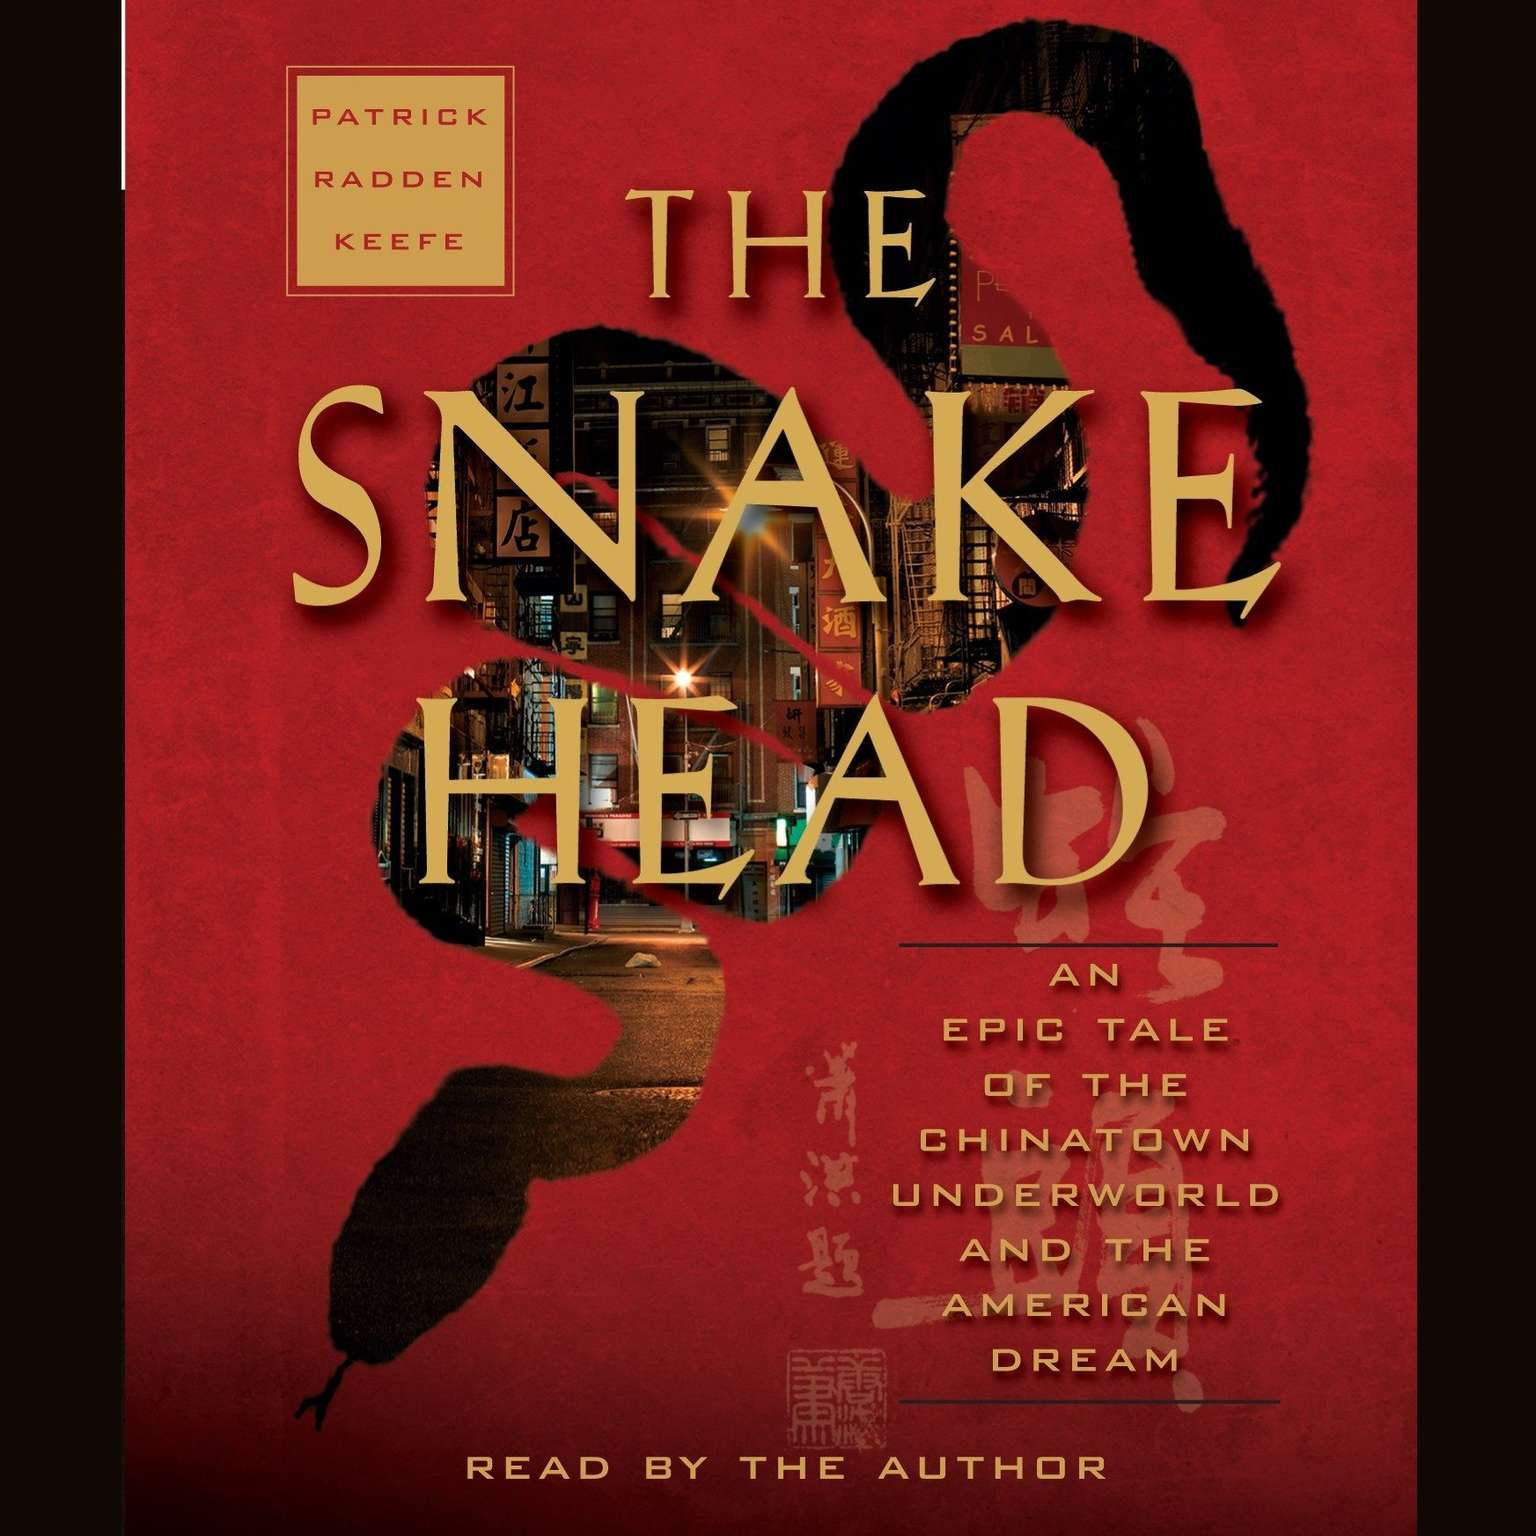 Printable The Snakehead: An Epic Tale of the Chinatown Underworld and the American Dream Audiobook Cover Art